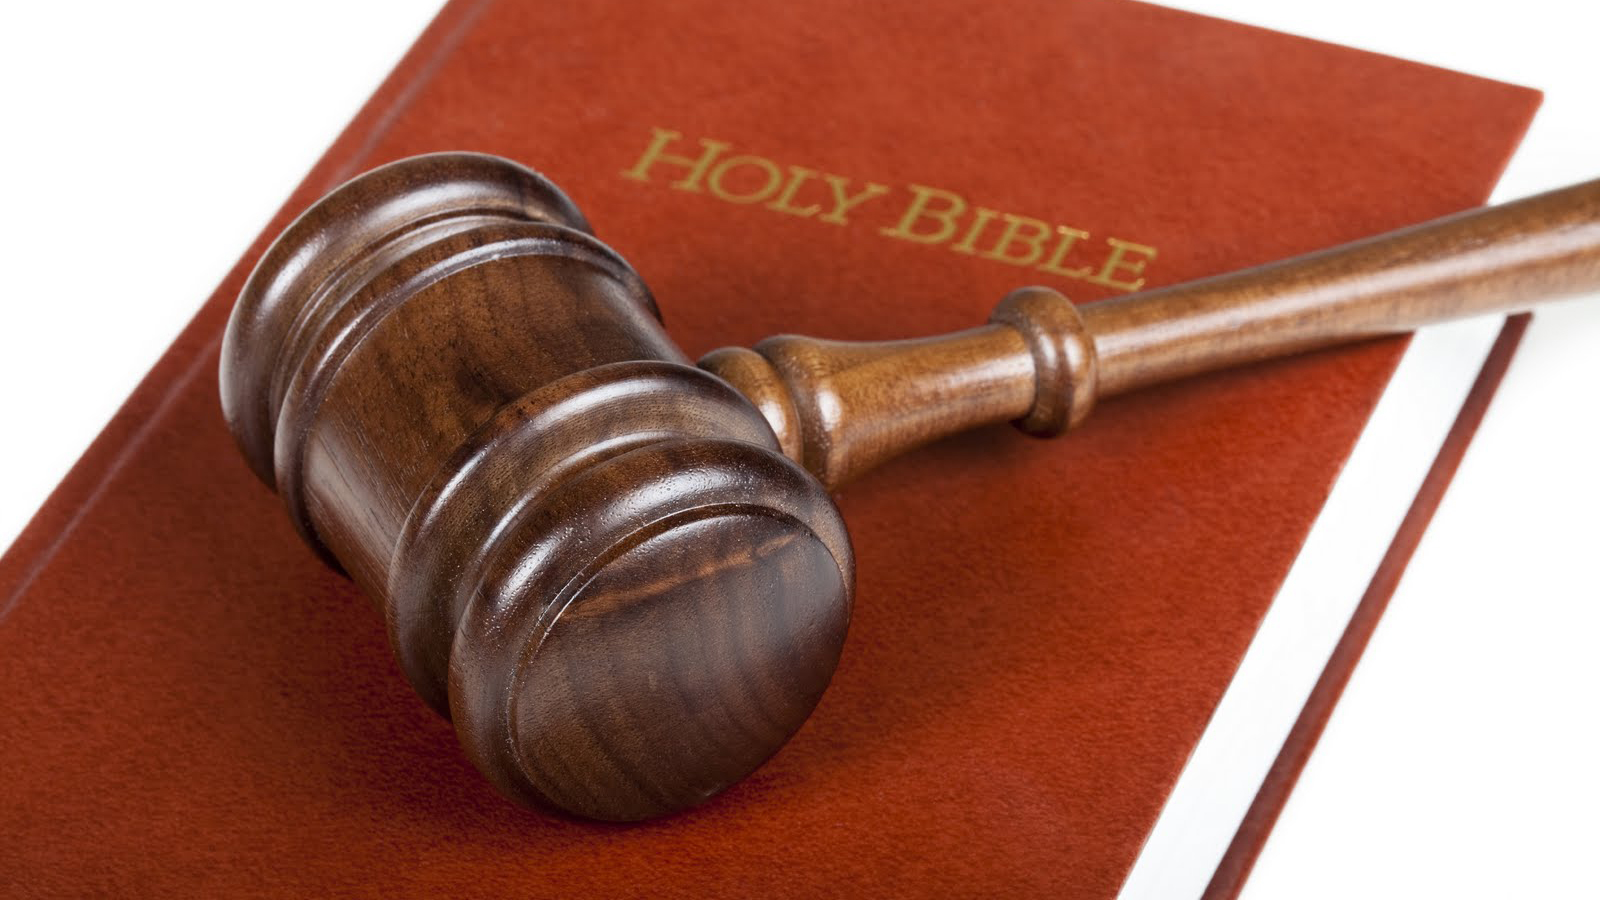 Gavel on top of a Bible